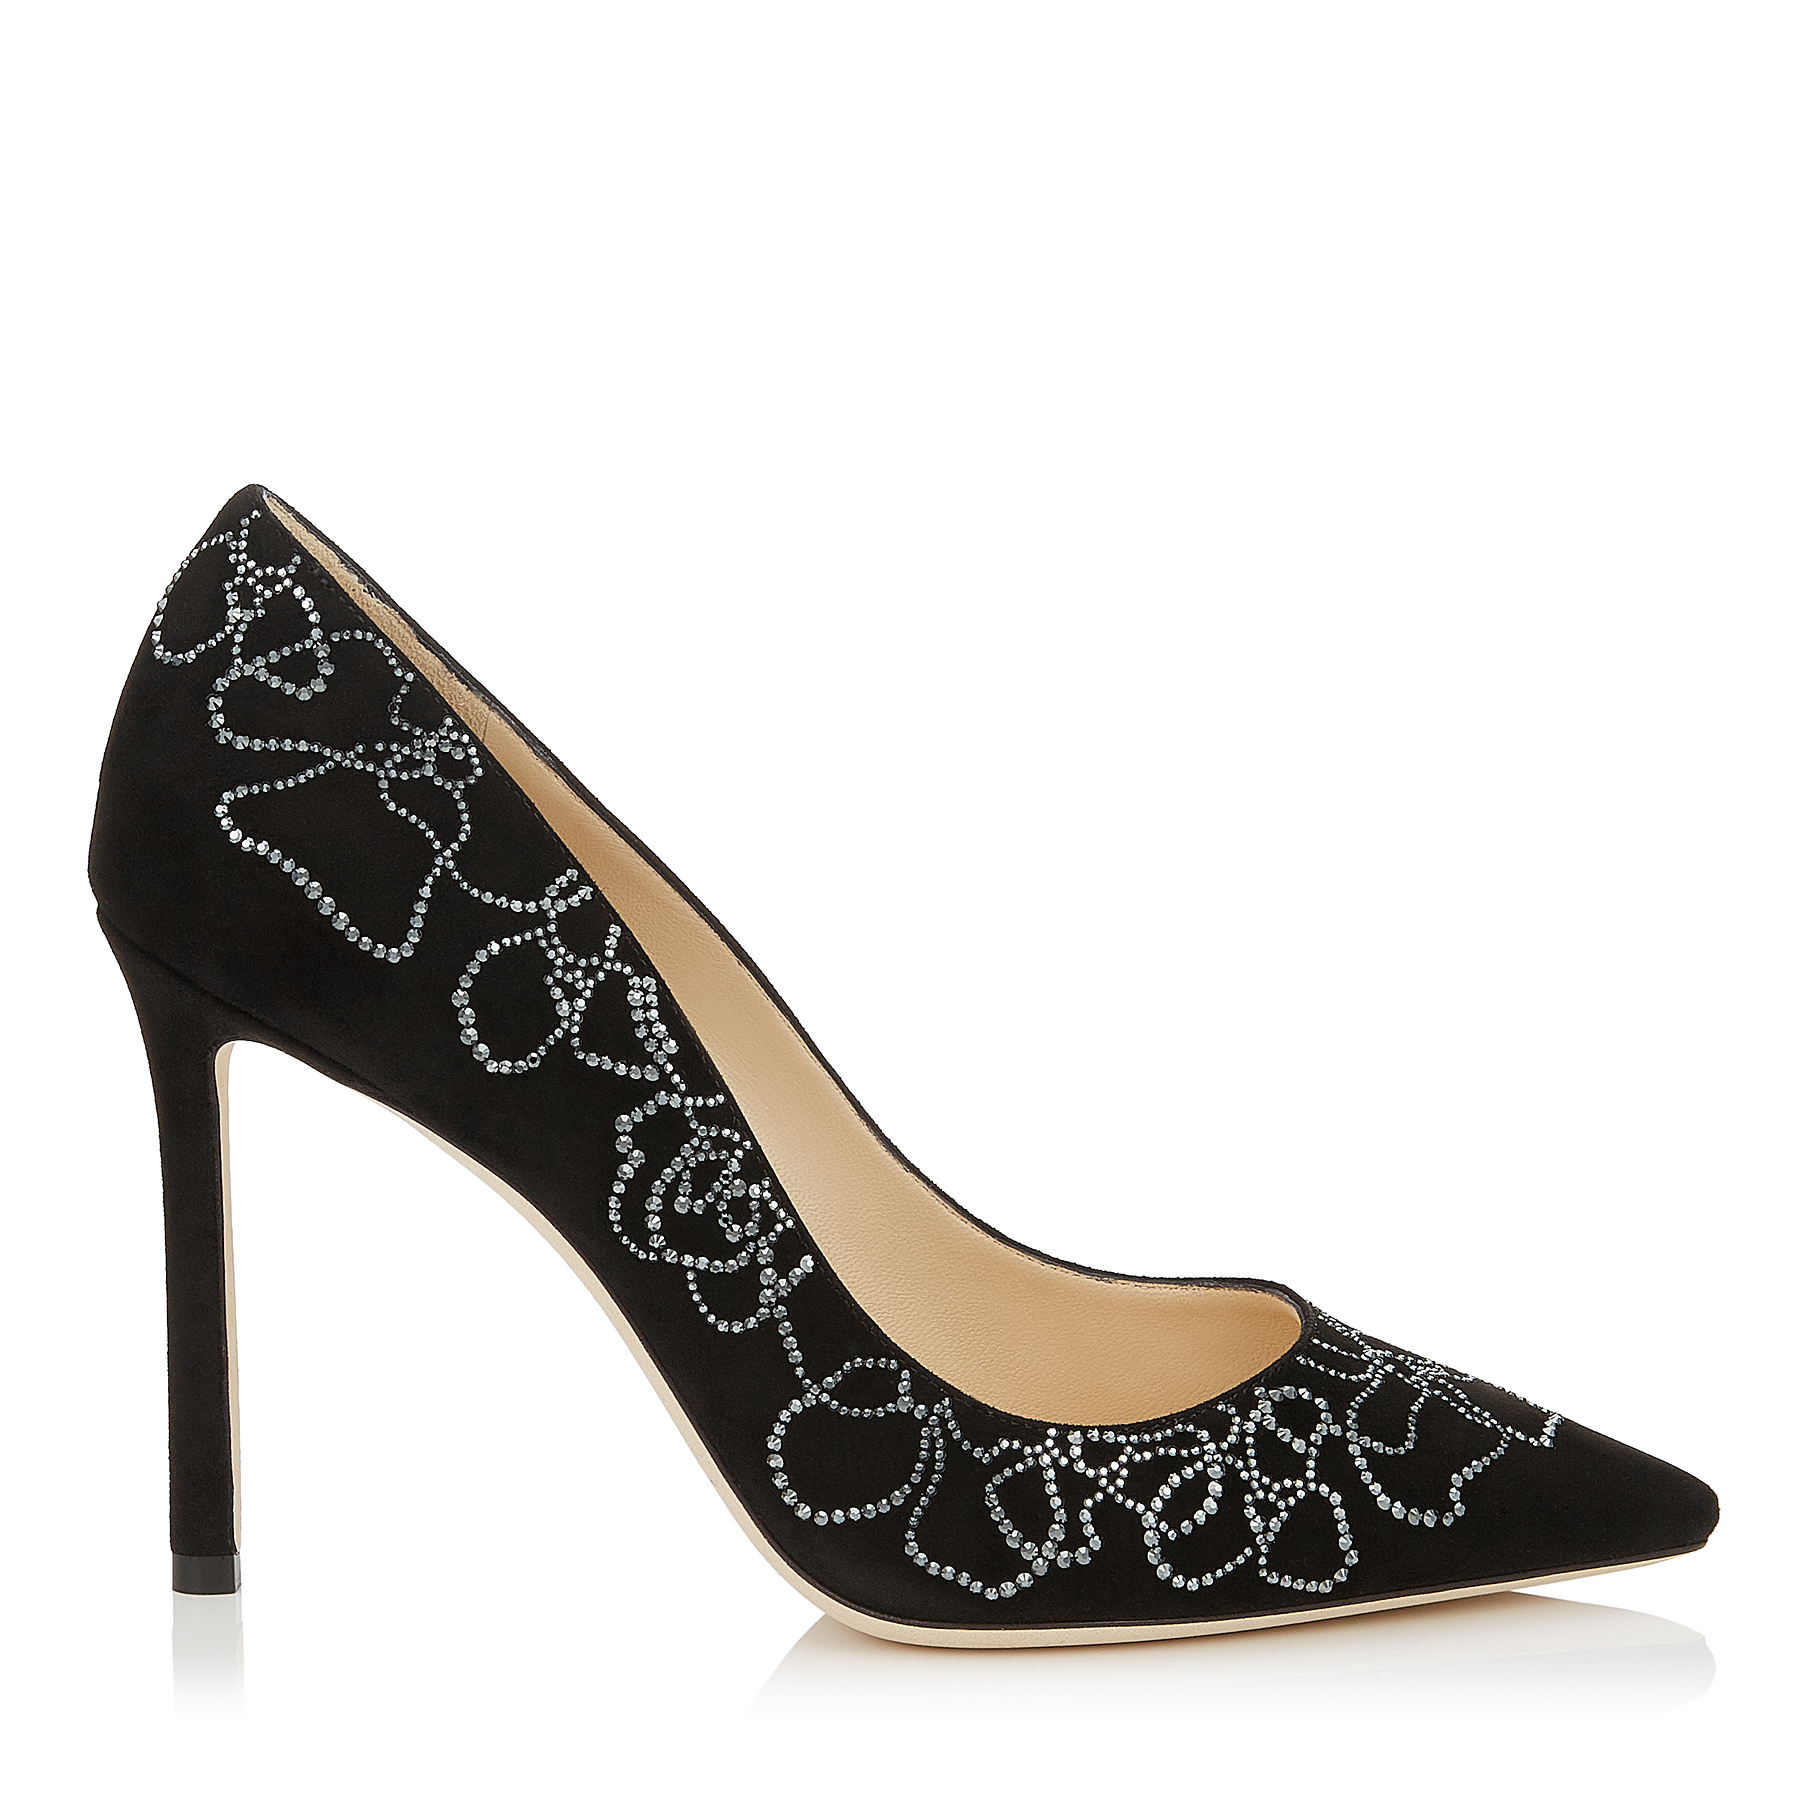 ROMY 100 Black Suede Pointy Toe Pumps with Crystal Floral Outline by Jimmy Choo